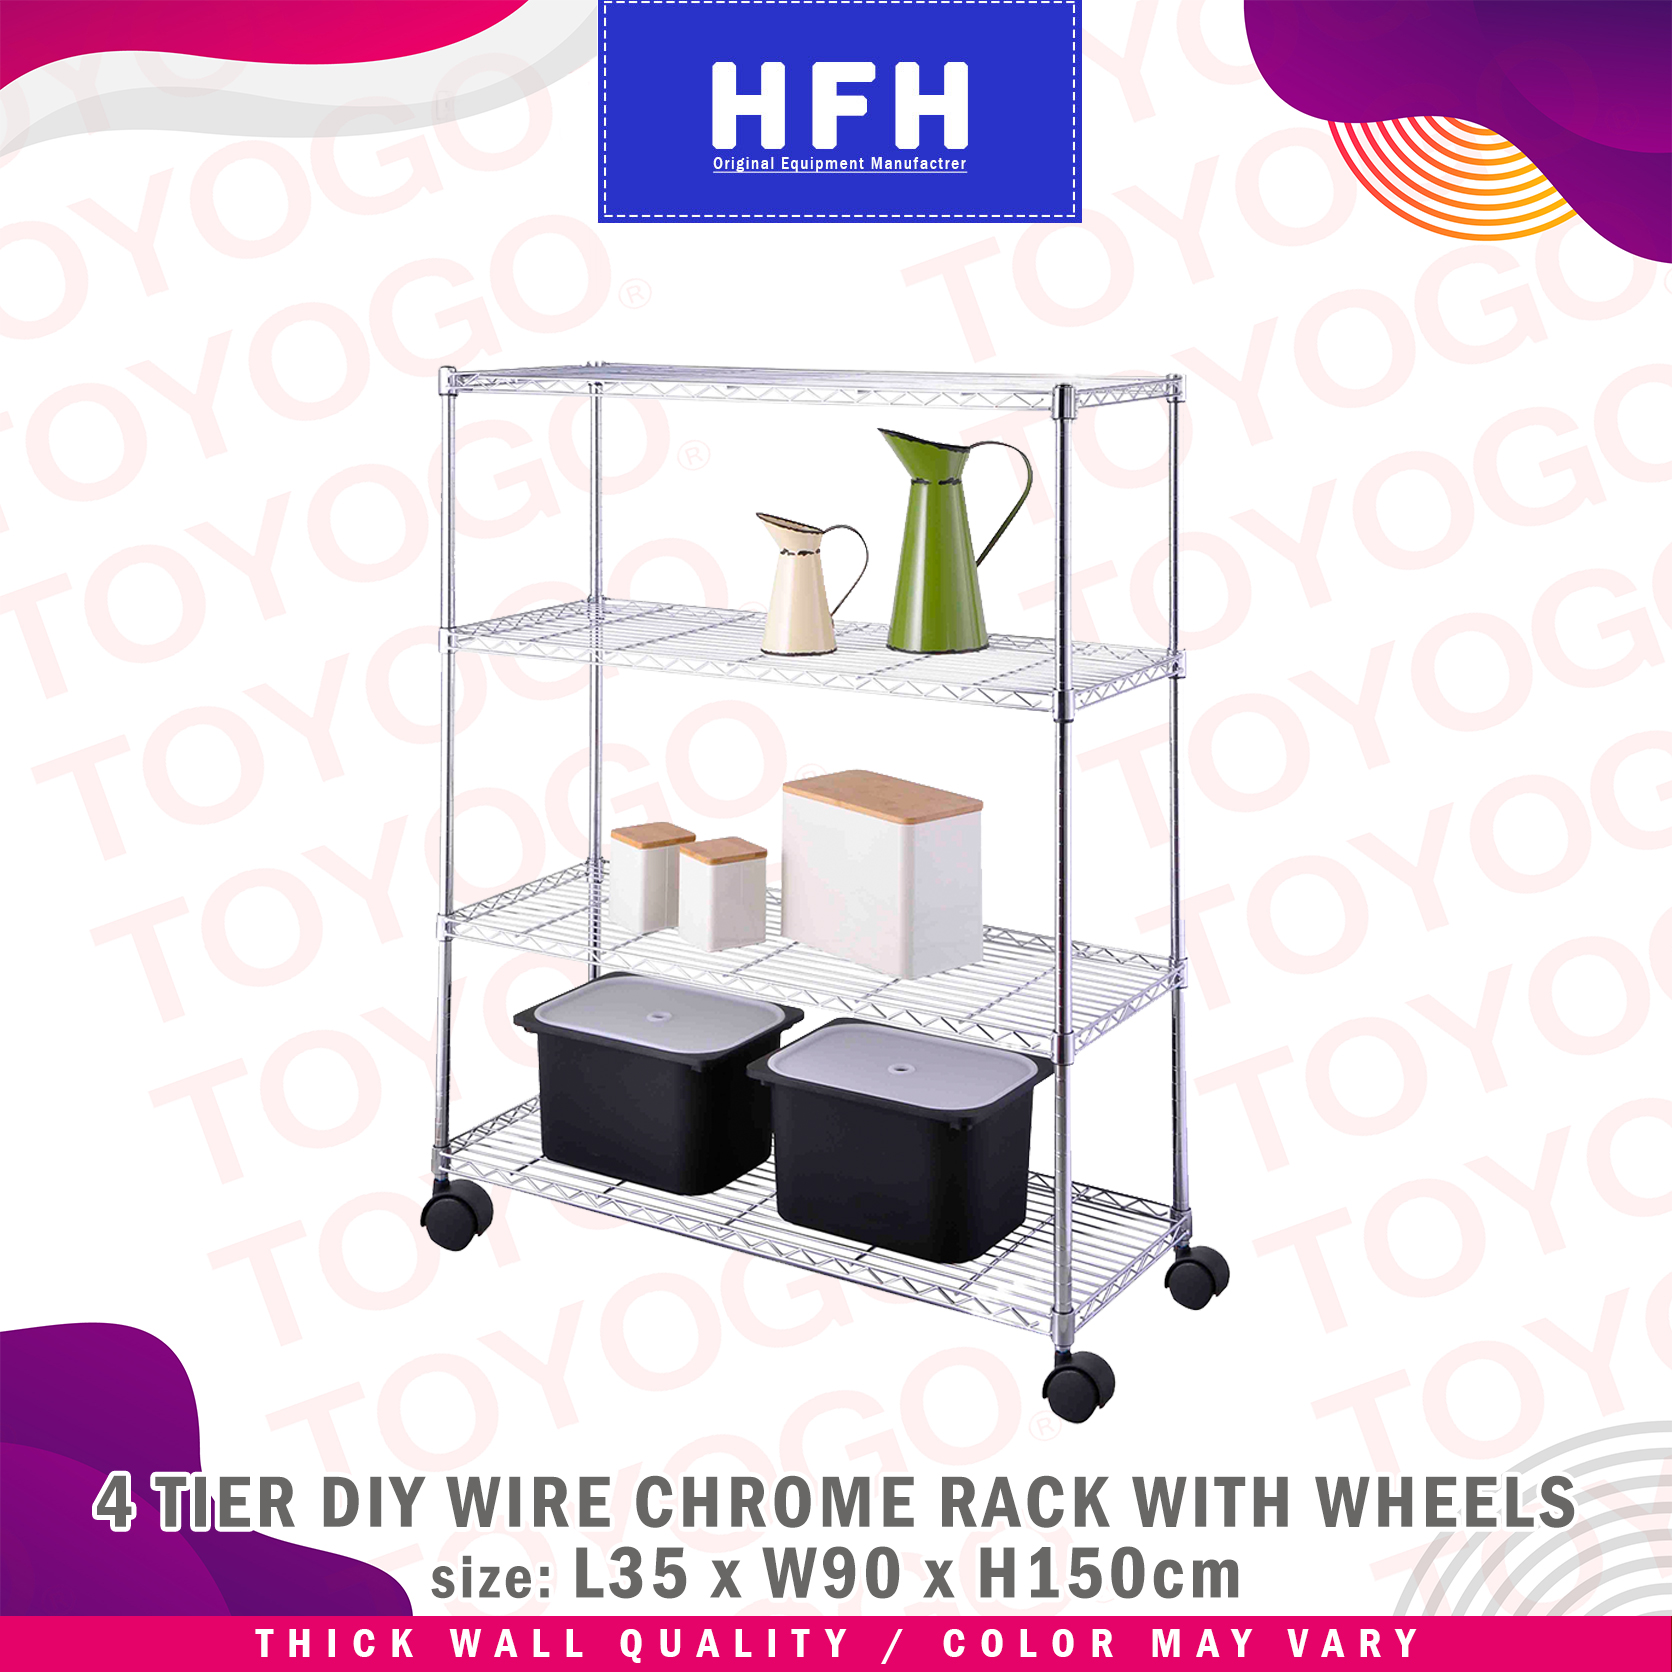 Toyogo DIY Wire Chrome Rack with Wheels (4 Tier)(HFH6857E)